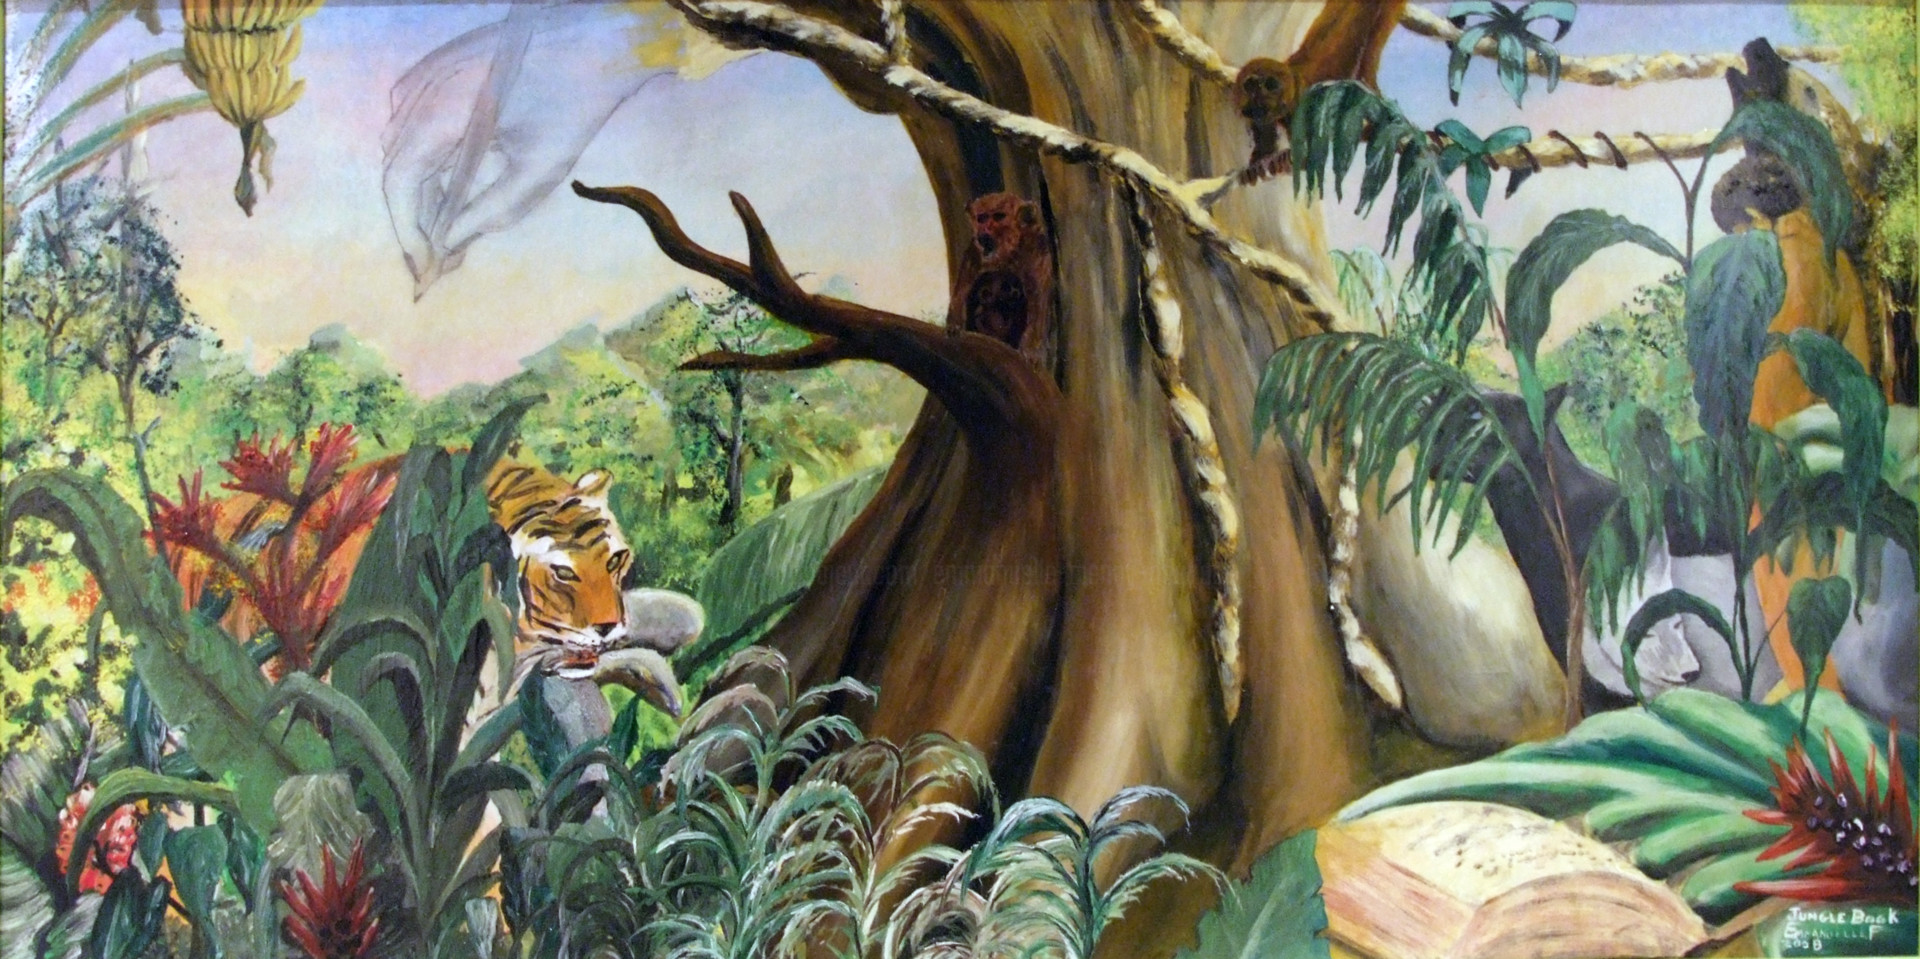 Emmanuelle Menny Fleuridas - Jungle Book